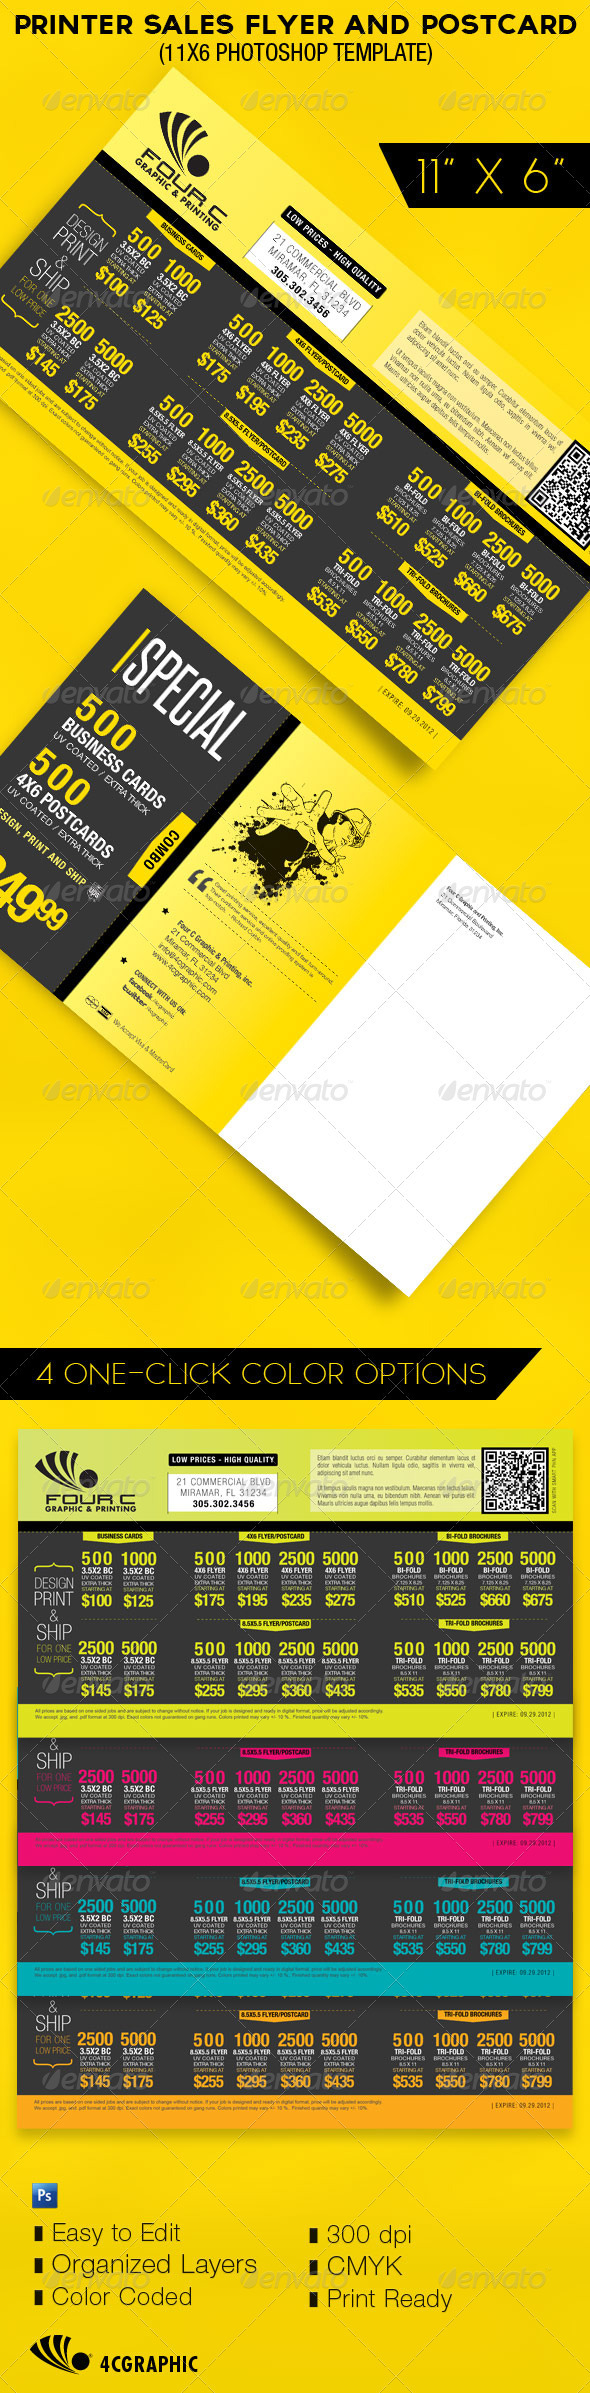 GraphicRiver Printer Sales Flyer and Postcard Template 2582708